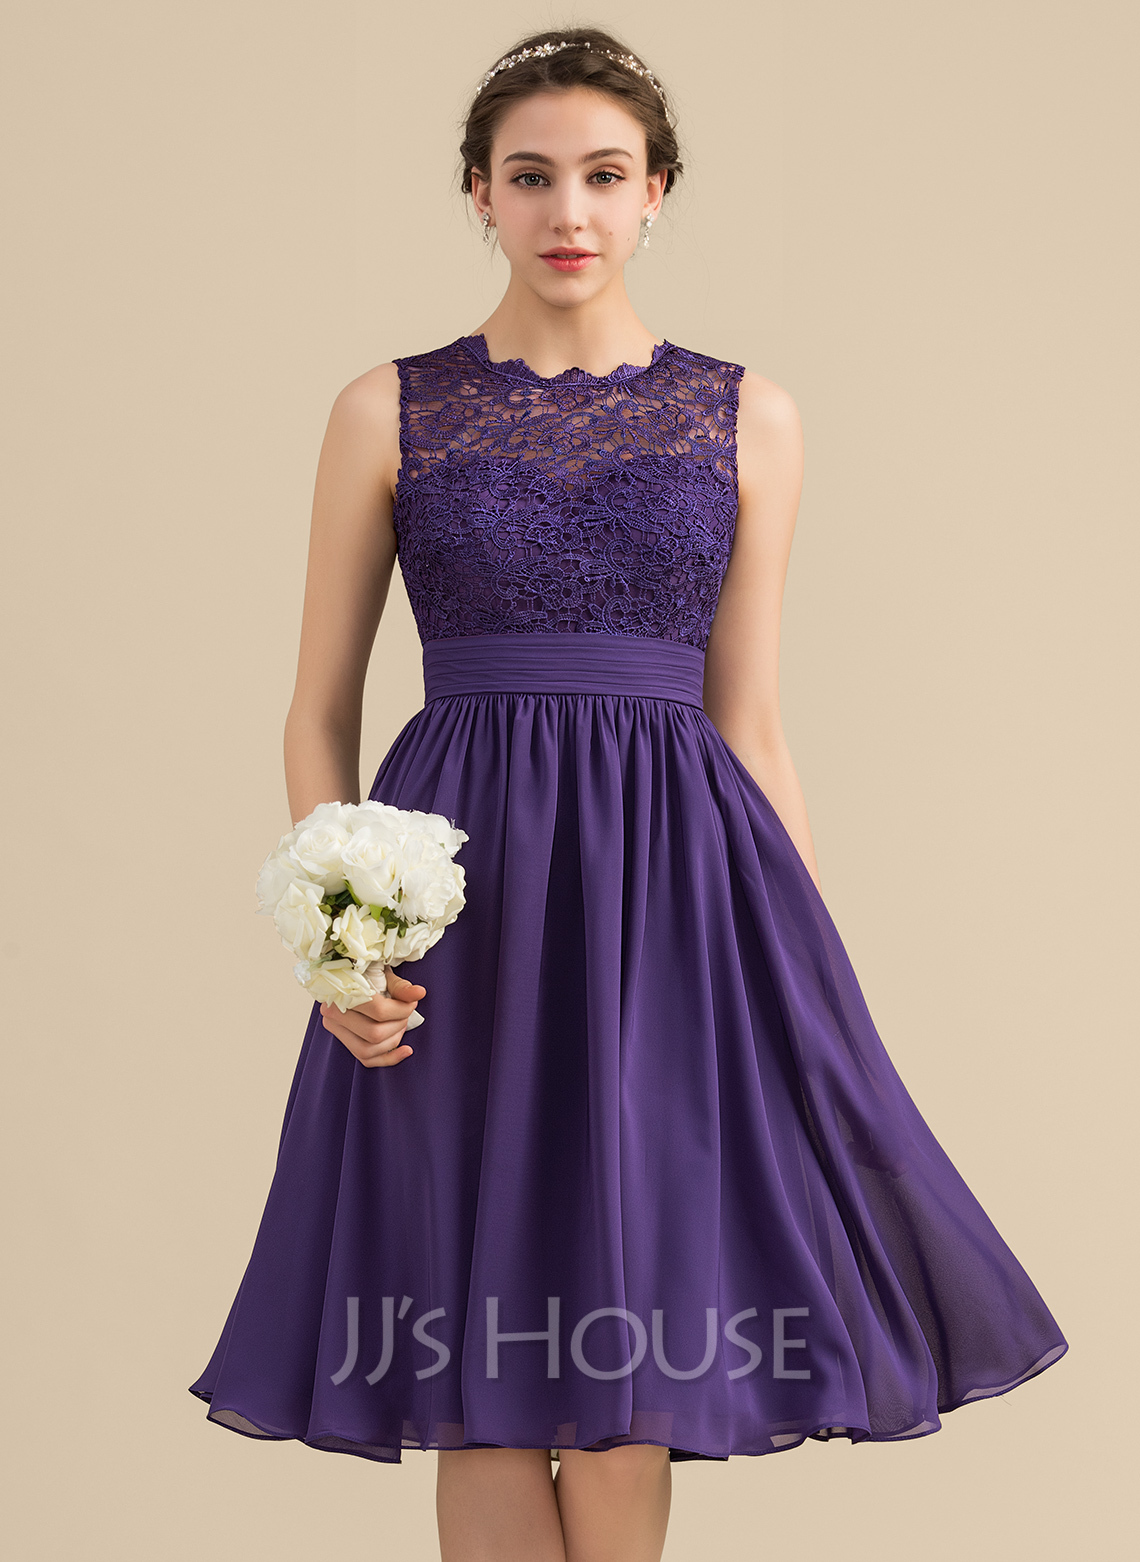 87d83786d62e A-Line/Princess Scoop Neck Knee-Length Chiffon Lace Bridesmaid Dress With  Ruffle. Loading zoom